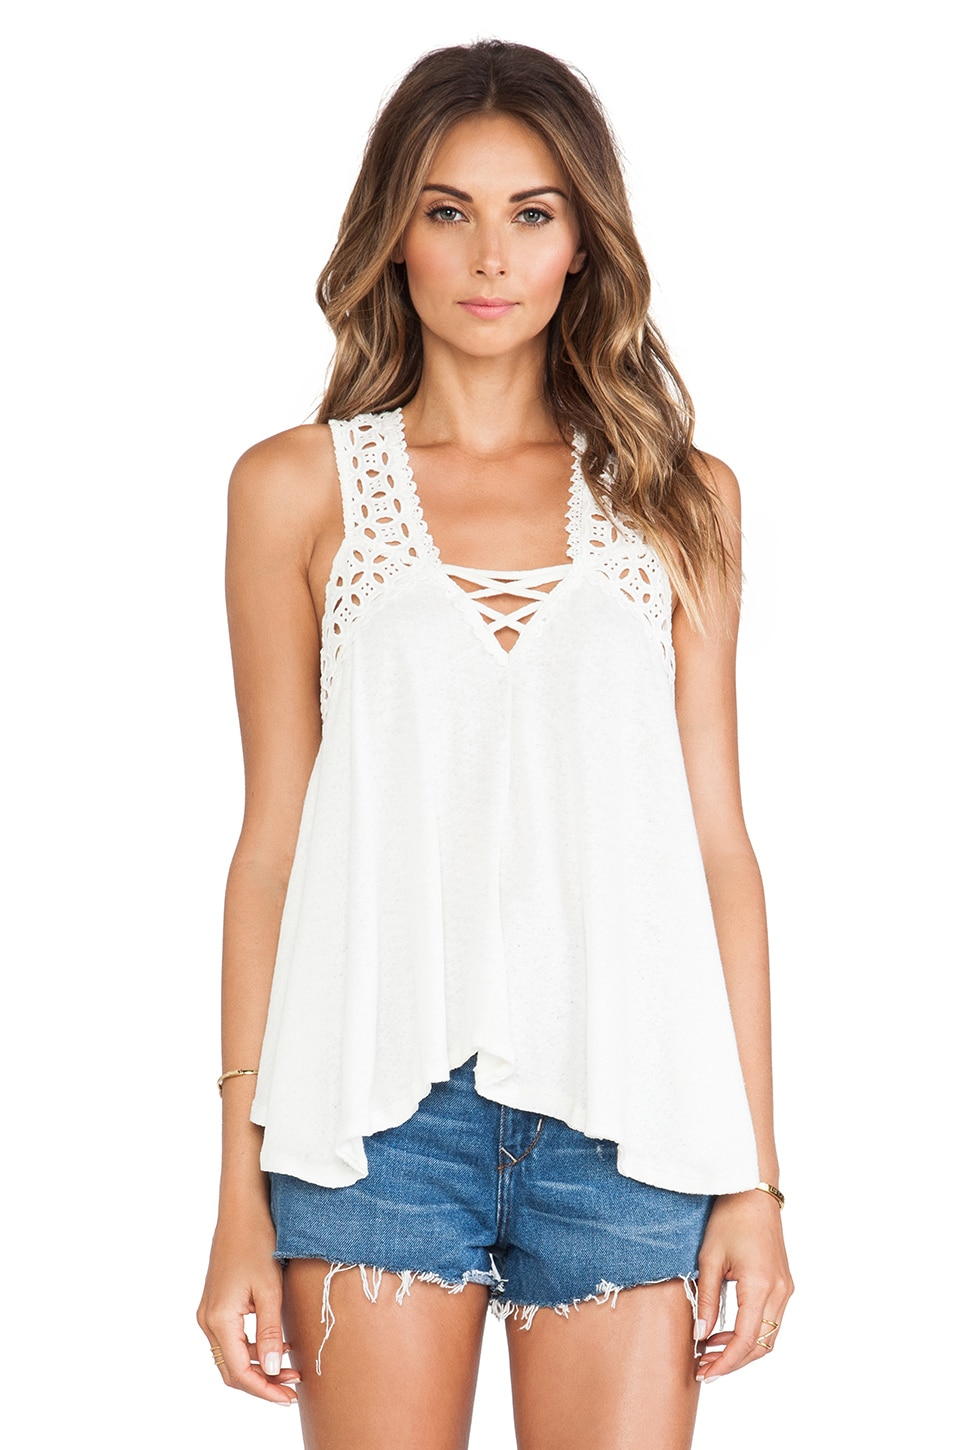 Free People Runa Round Eyelet Top in Ivory